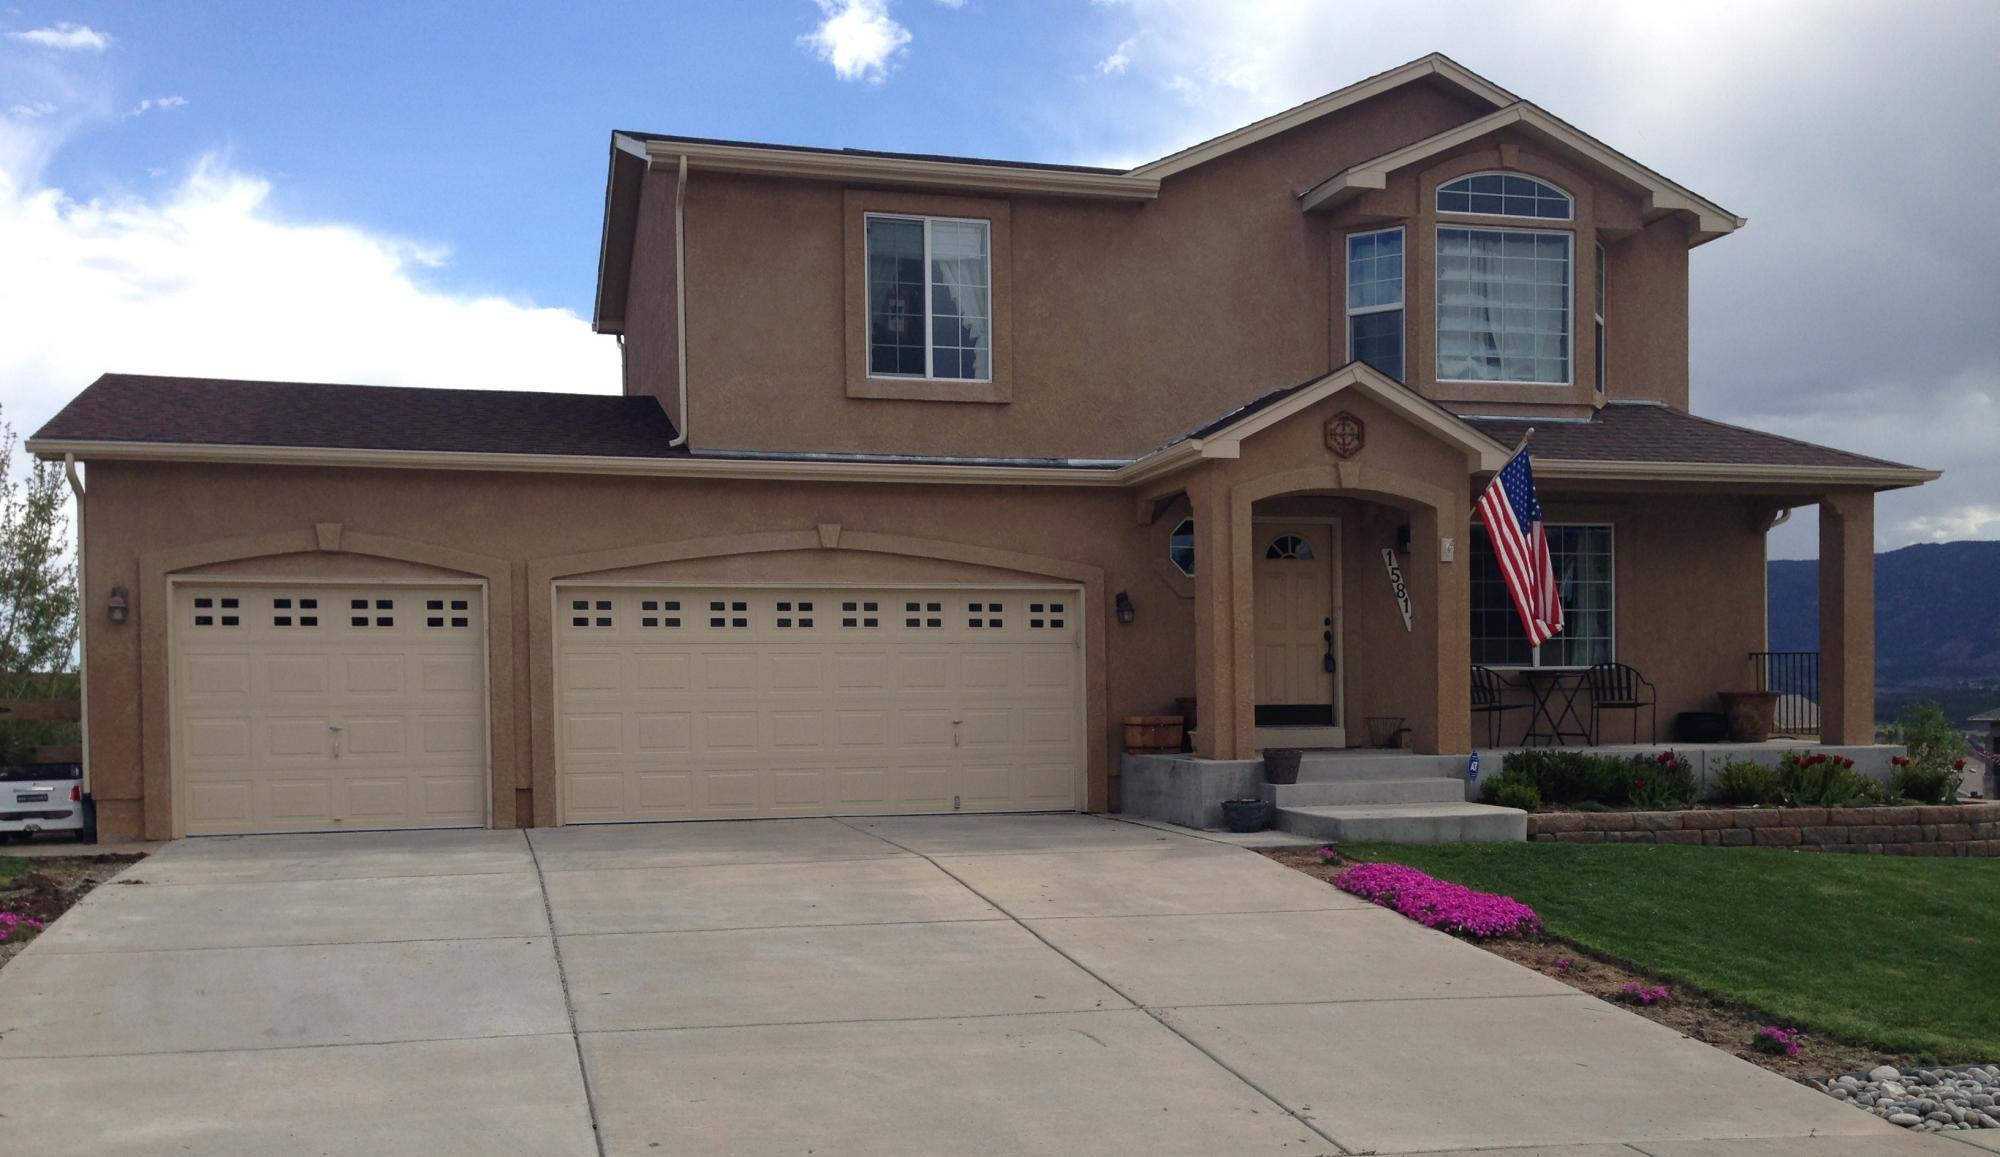 Homes For Sale In Briargate, Colorado Springs, Co throughout District 20 Colorado Springs